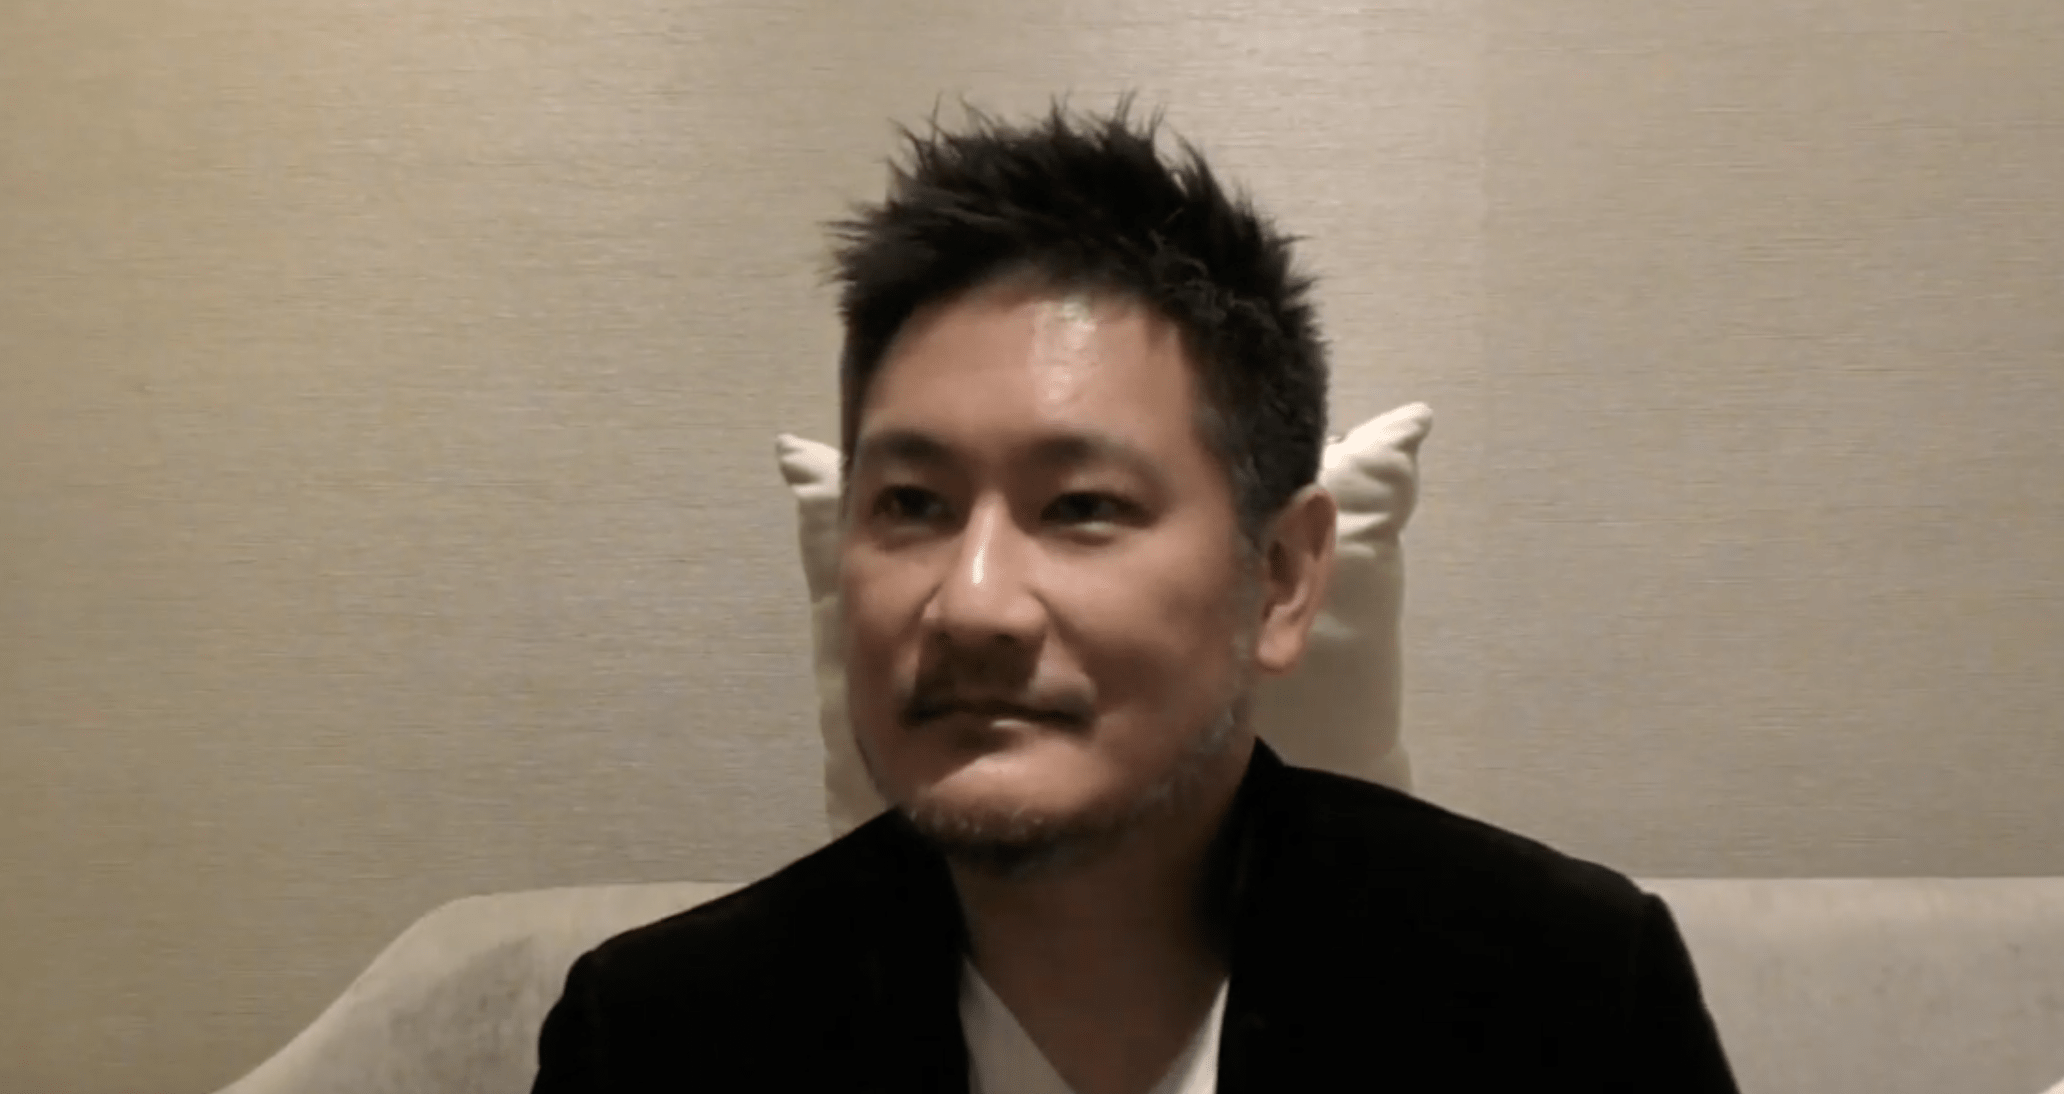 Chatri Sityodtong On MMA Going To The Olympics, Joe Rogan And More